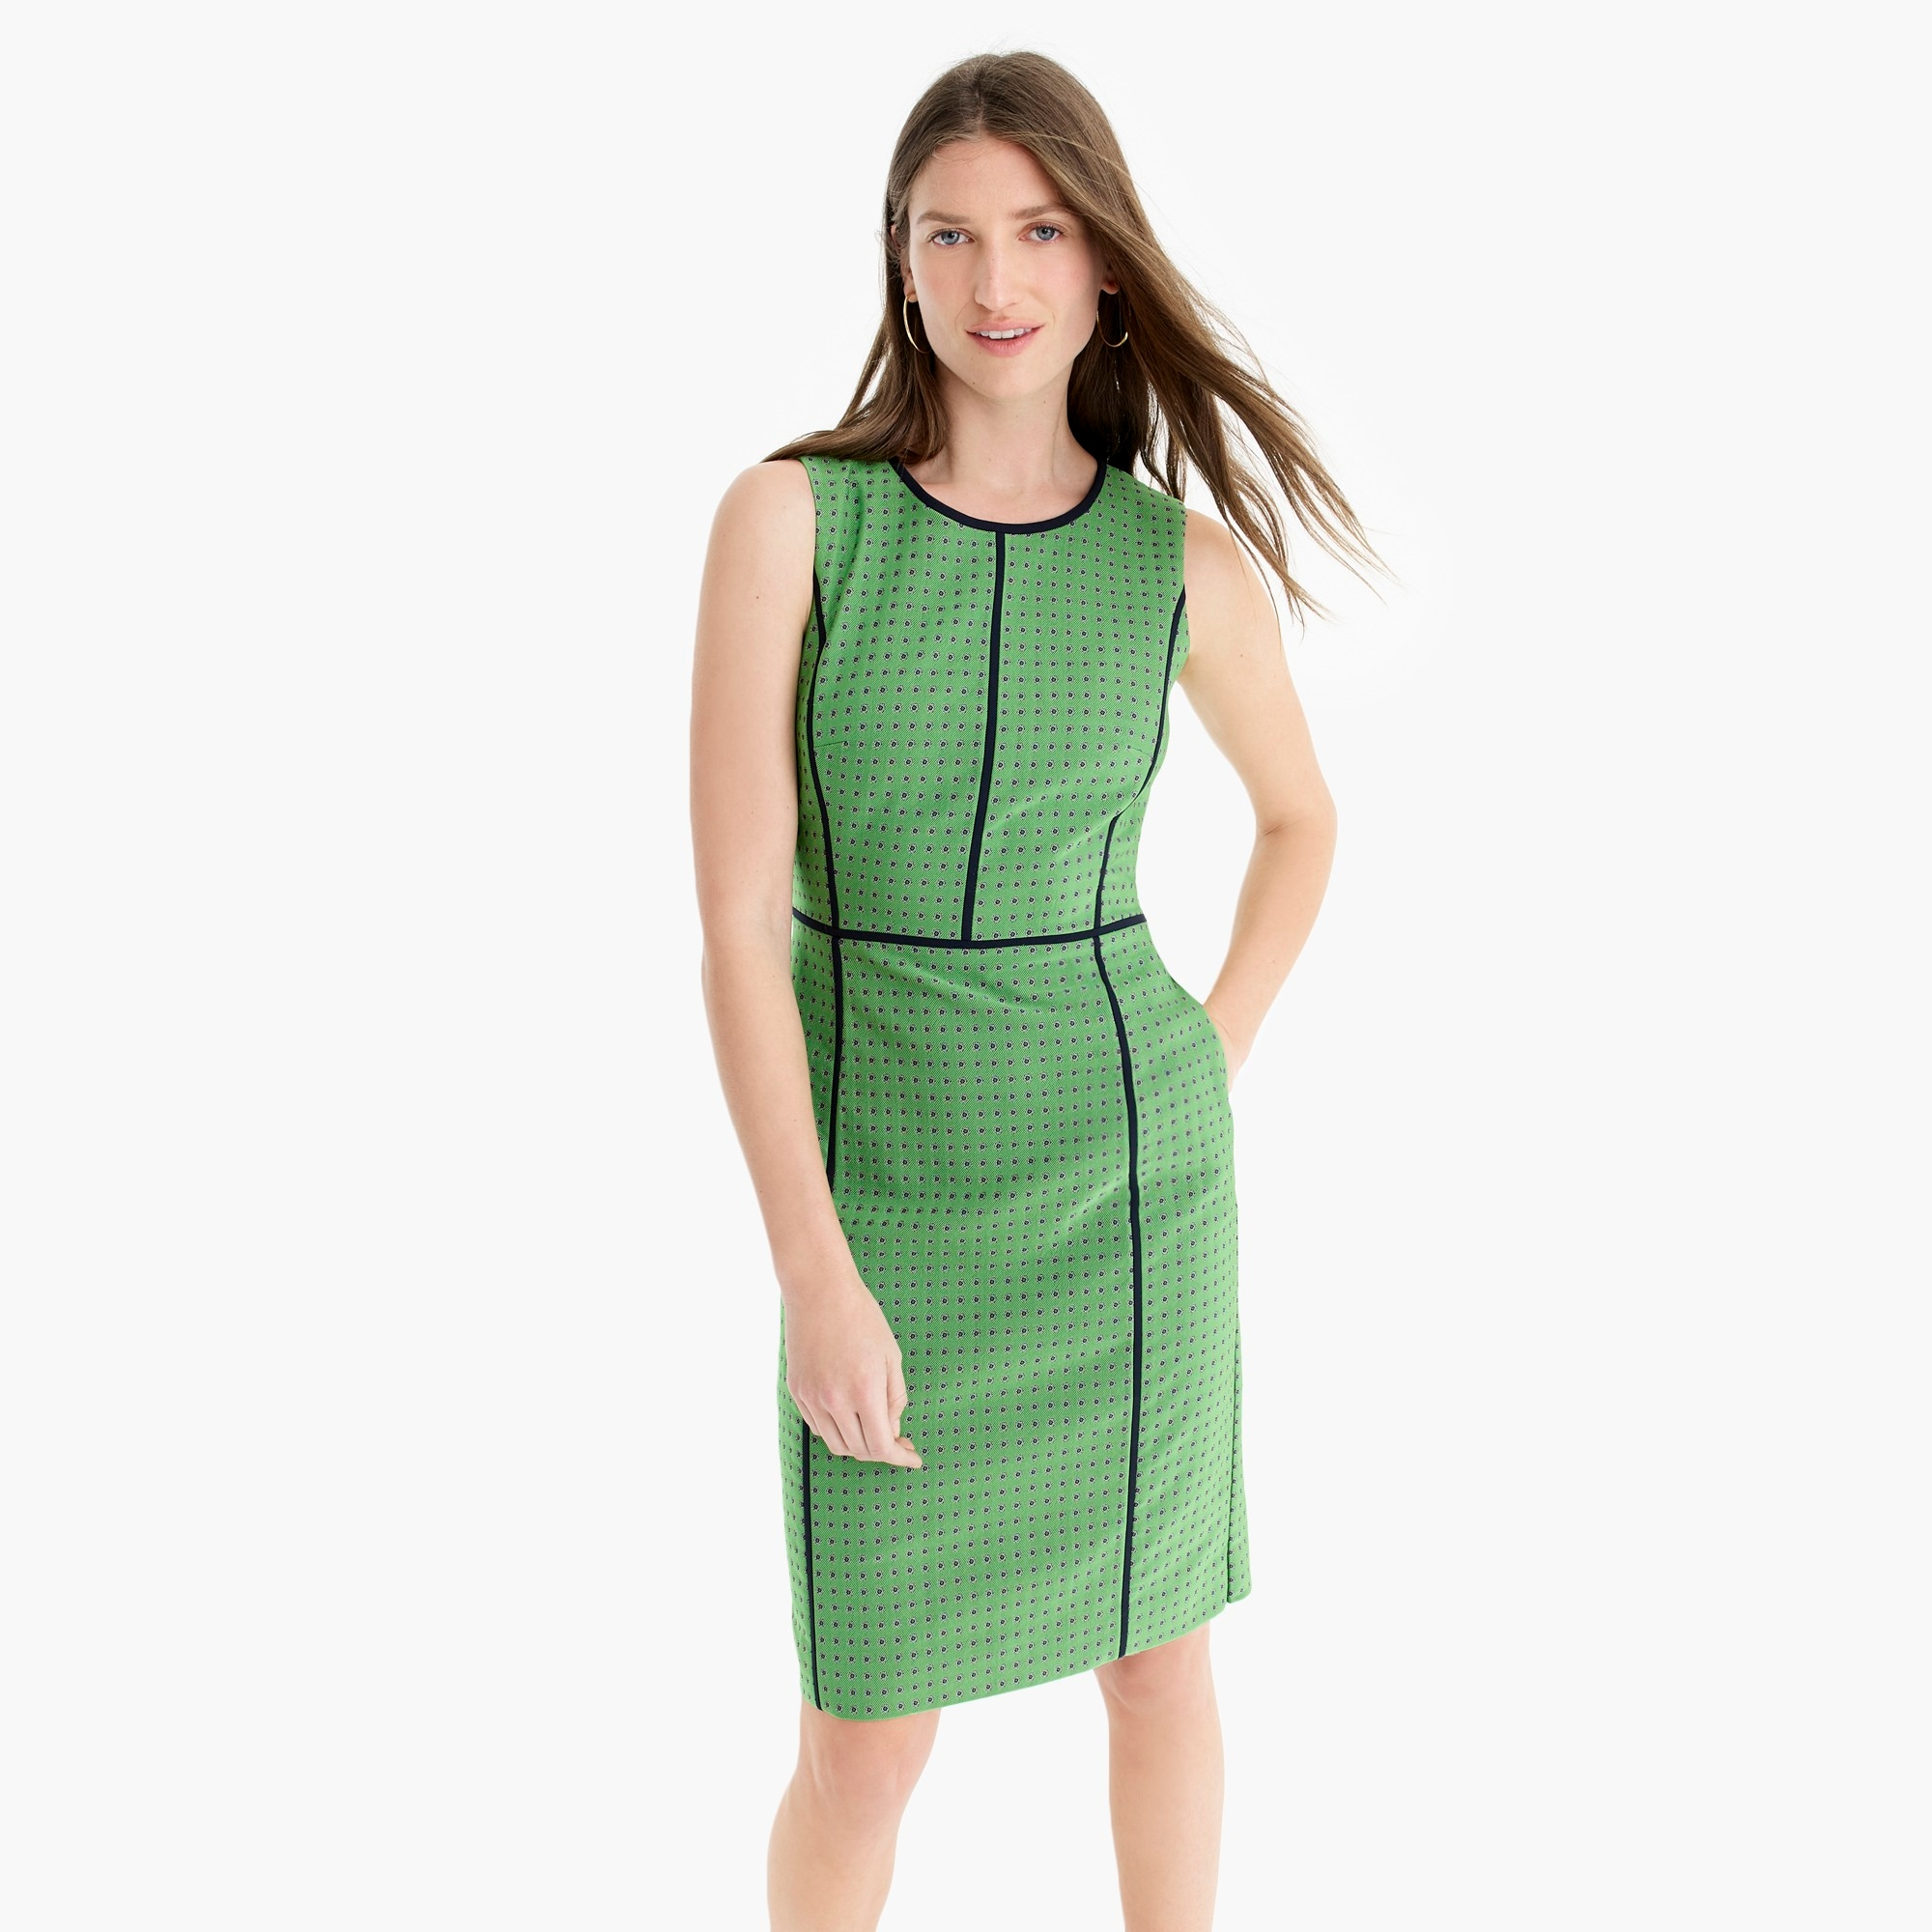 women's petite paneled sheath dress - women's dresses